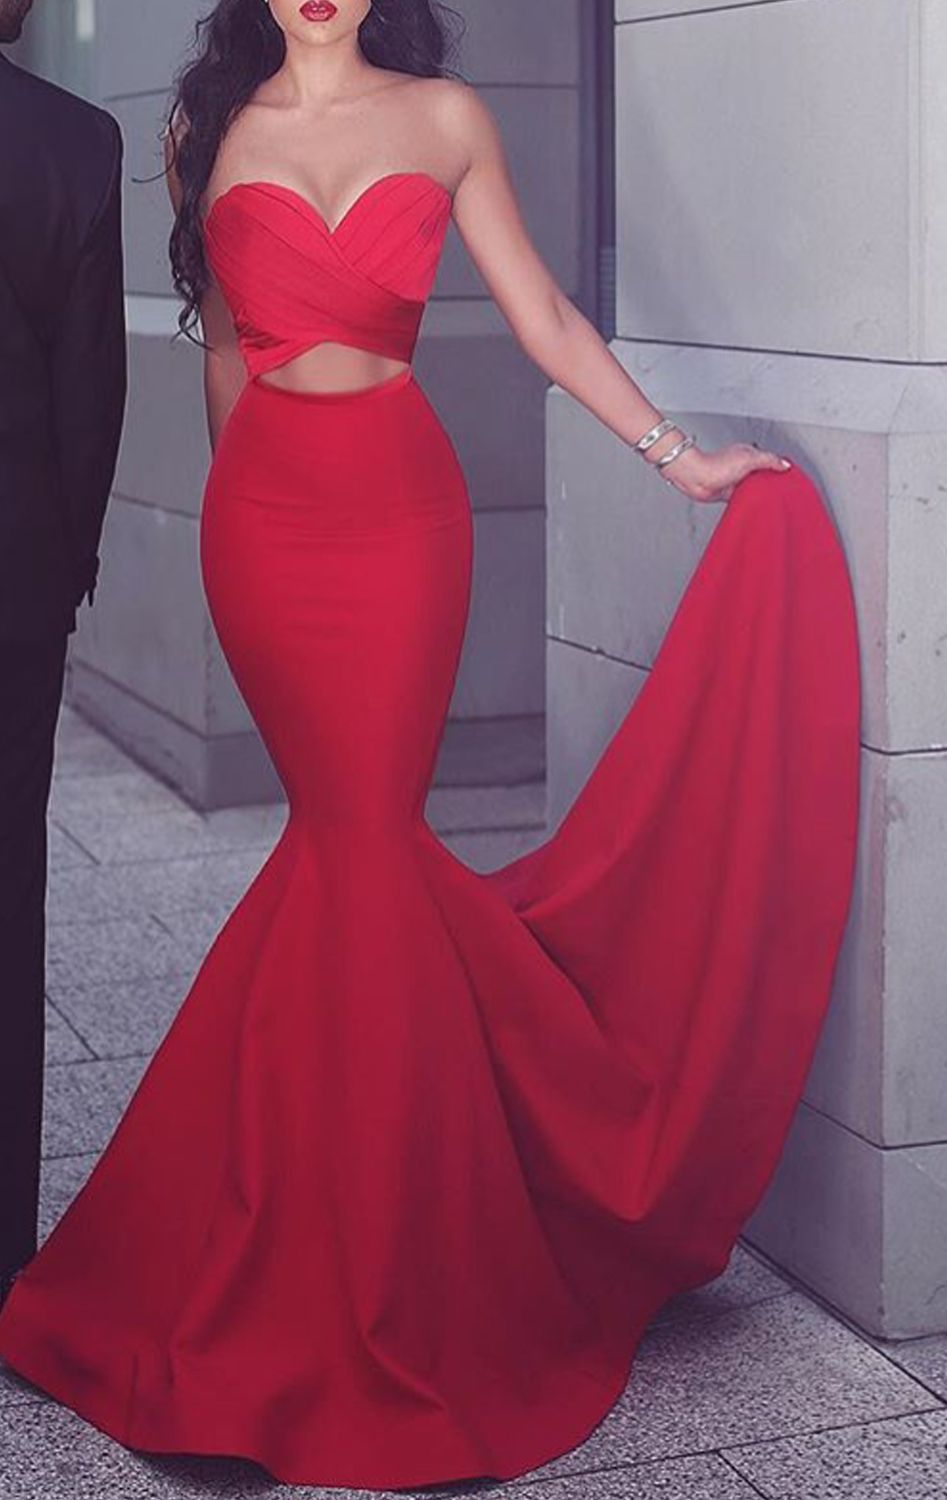 Mermaid strapless satin long prom dress red formal gown cut out